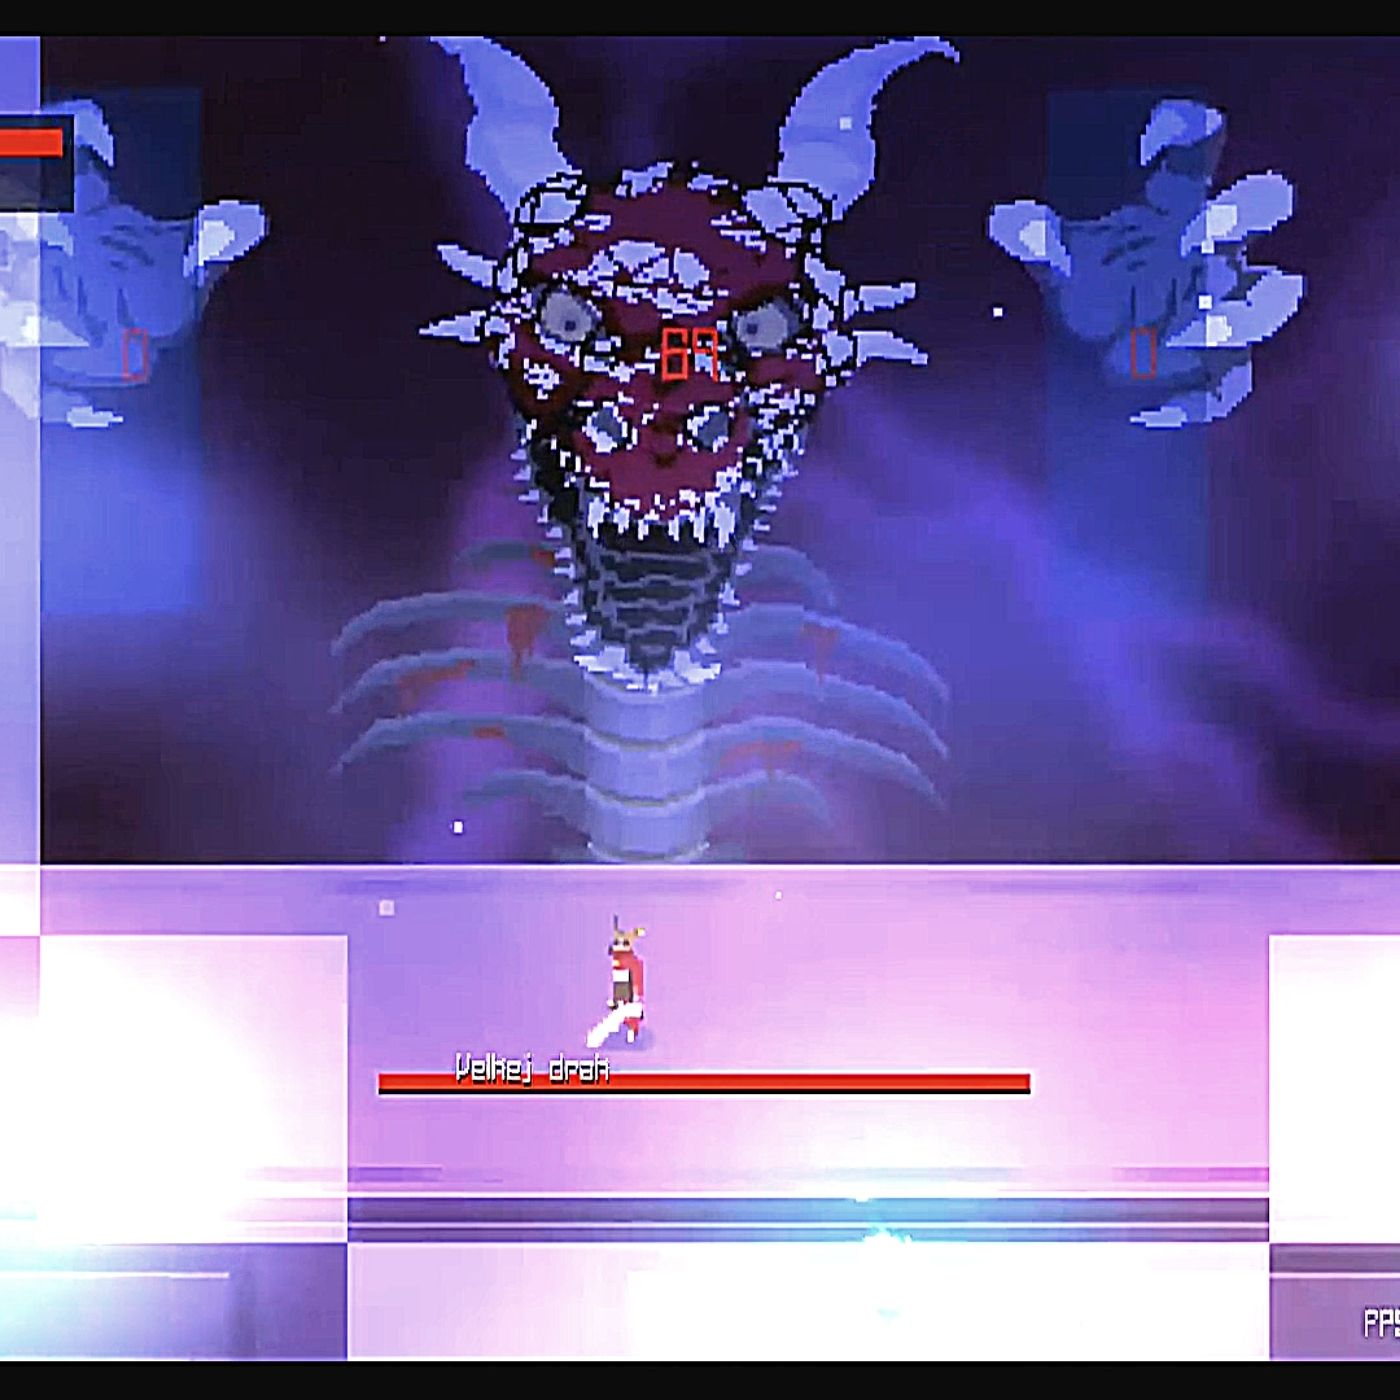 Still image of a boss fight from the Project Sang demo